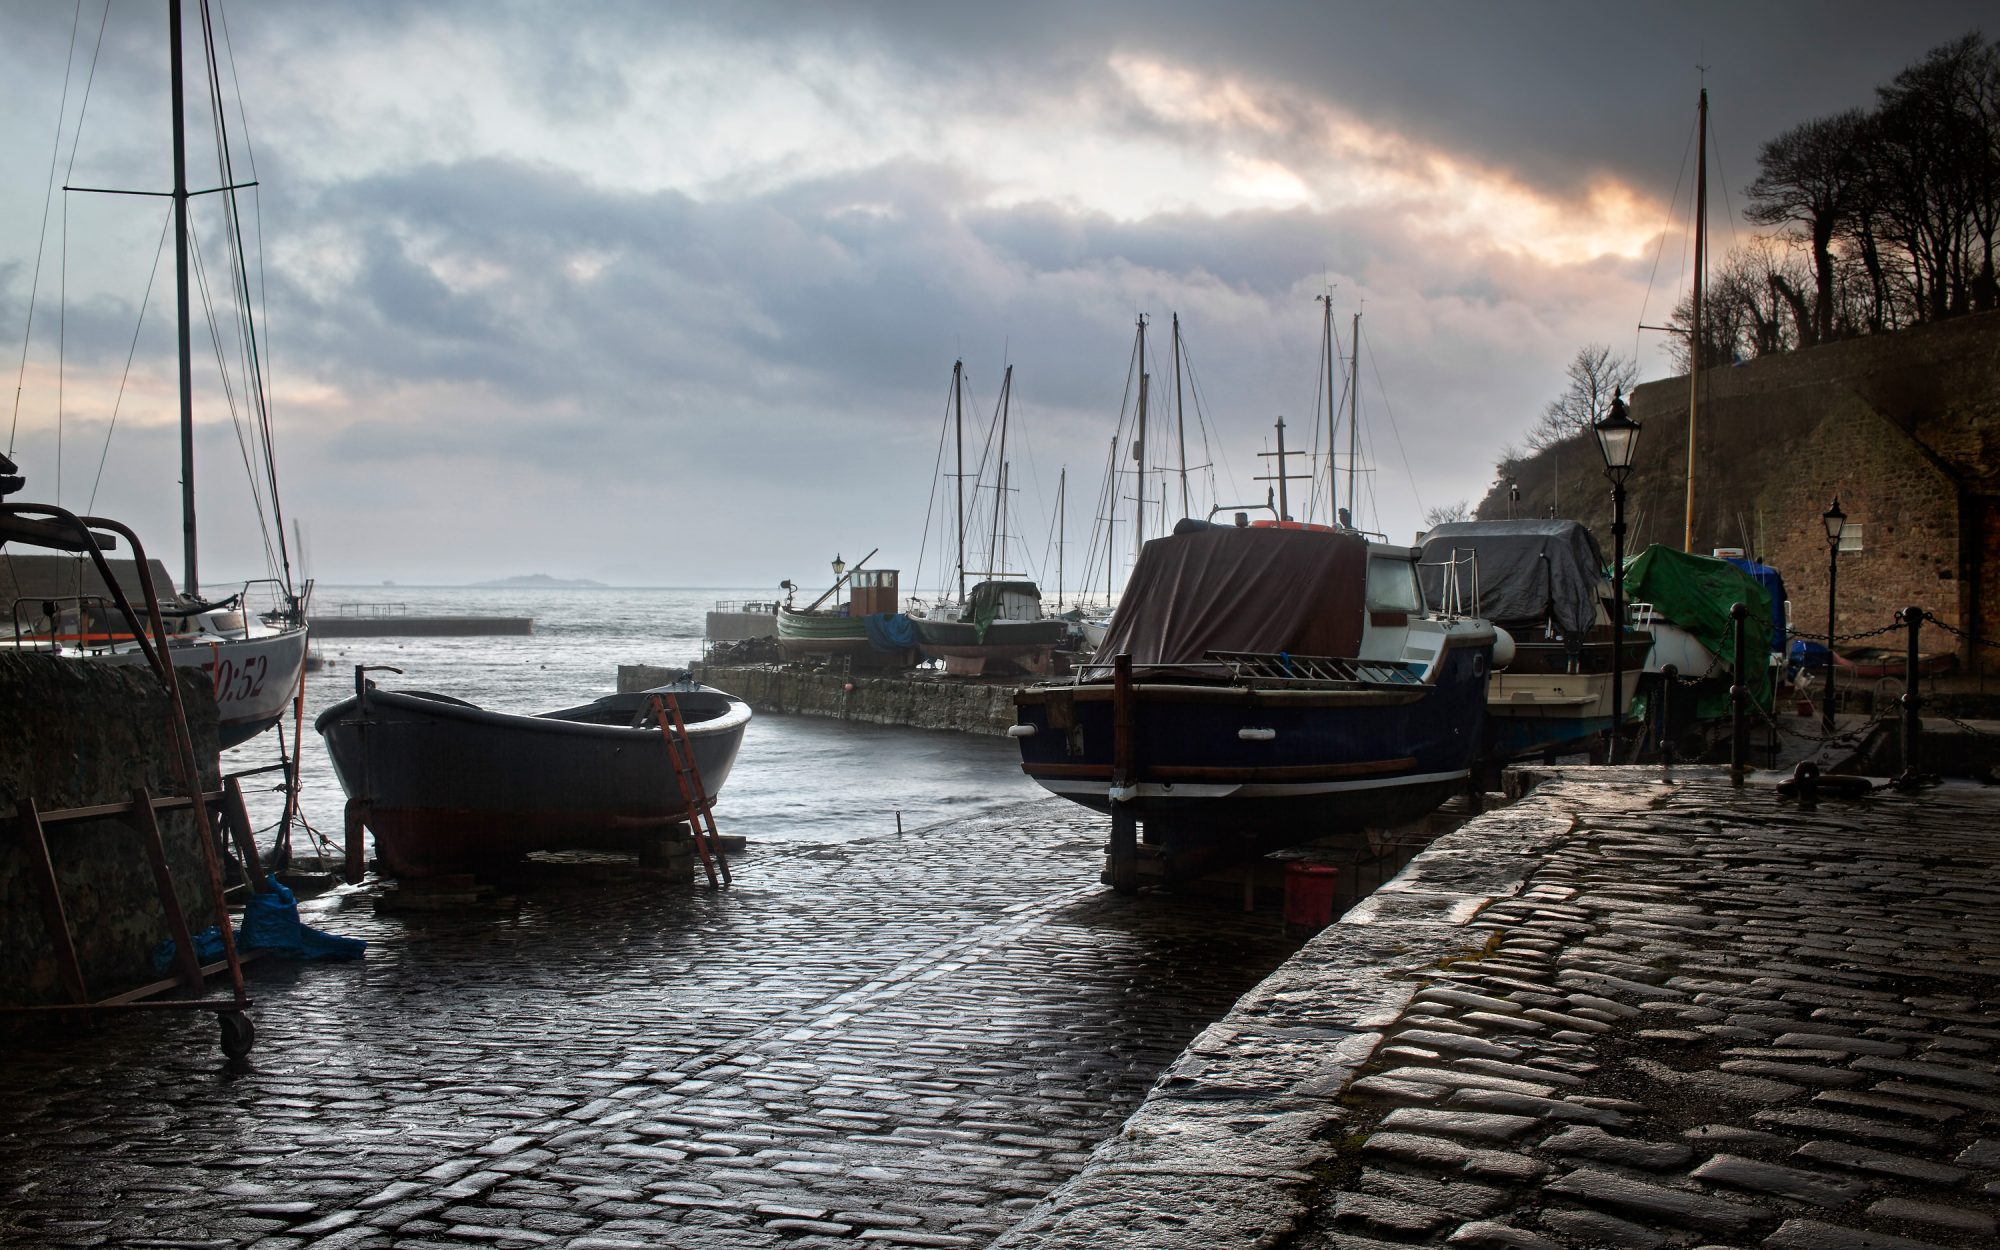 Dysart Harbor Fife Scotland